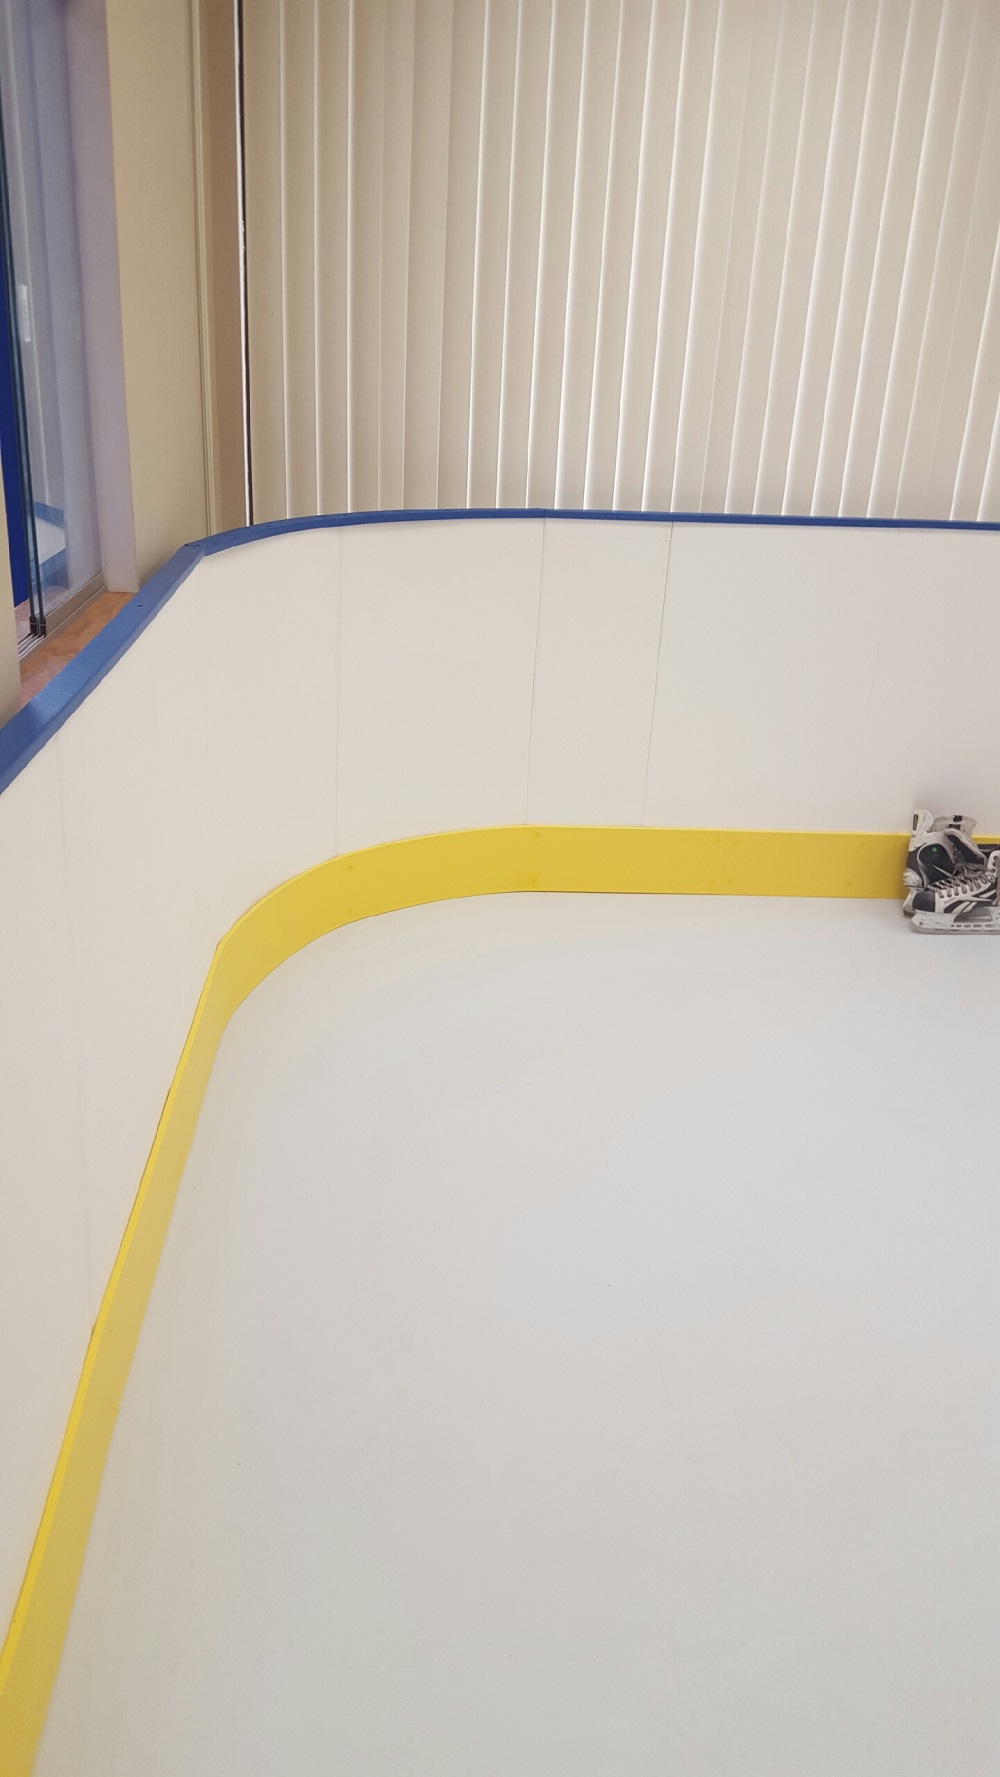 Synthetic ice rink with rounded corners.  42 inch tall white boards with yellow kicker.